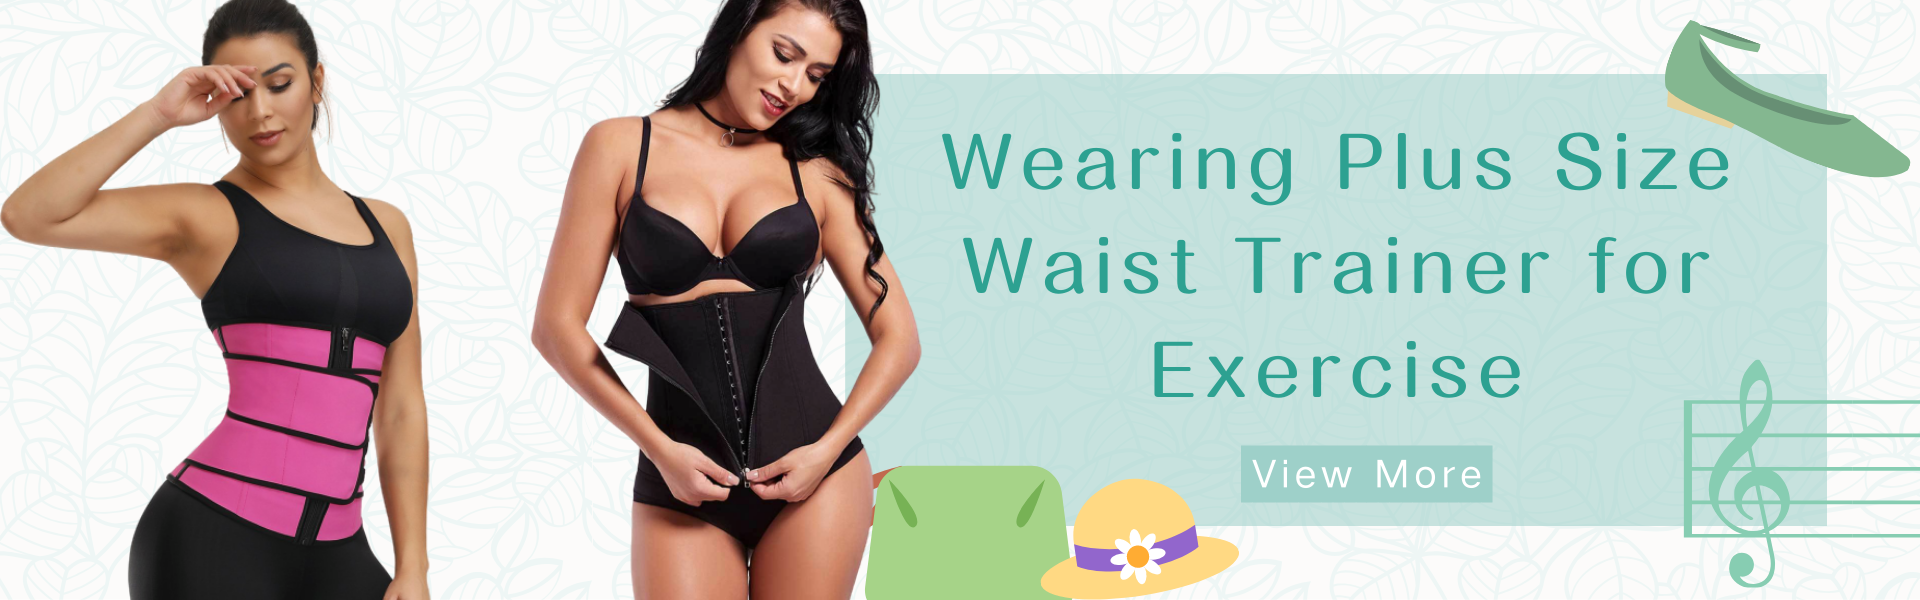 Wearing Plus Size Waist Trainer for Exercise